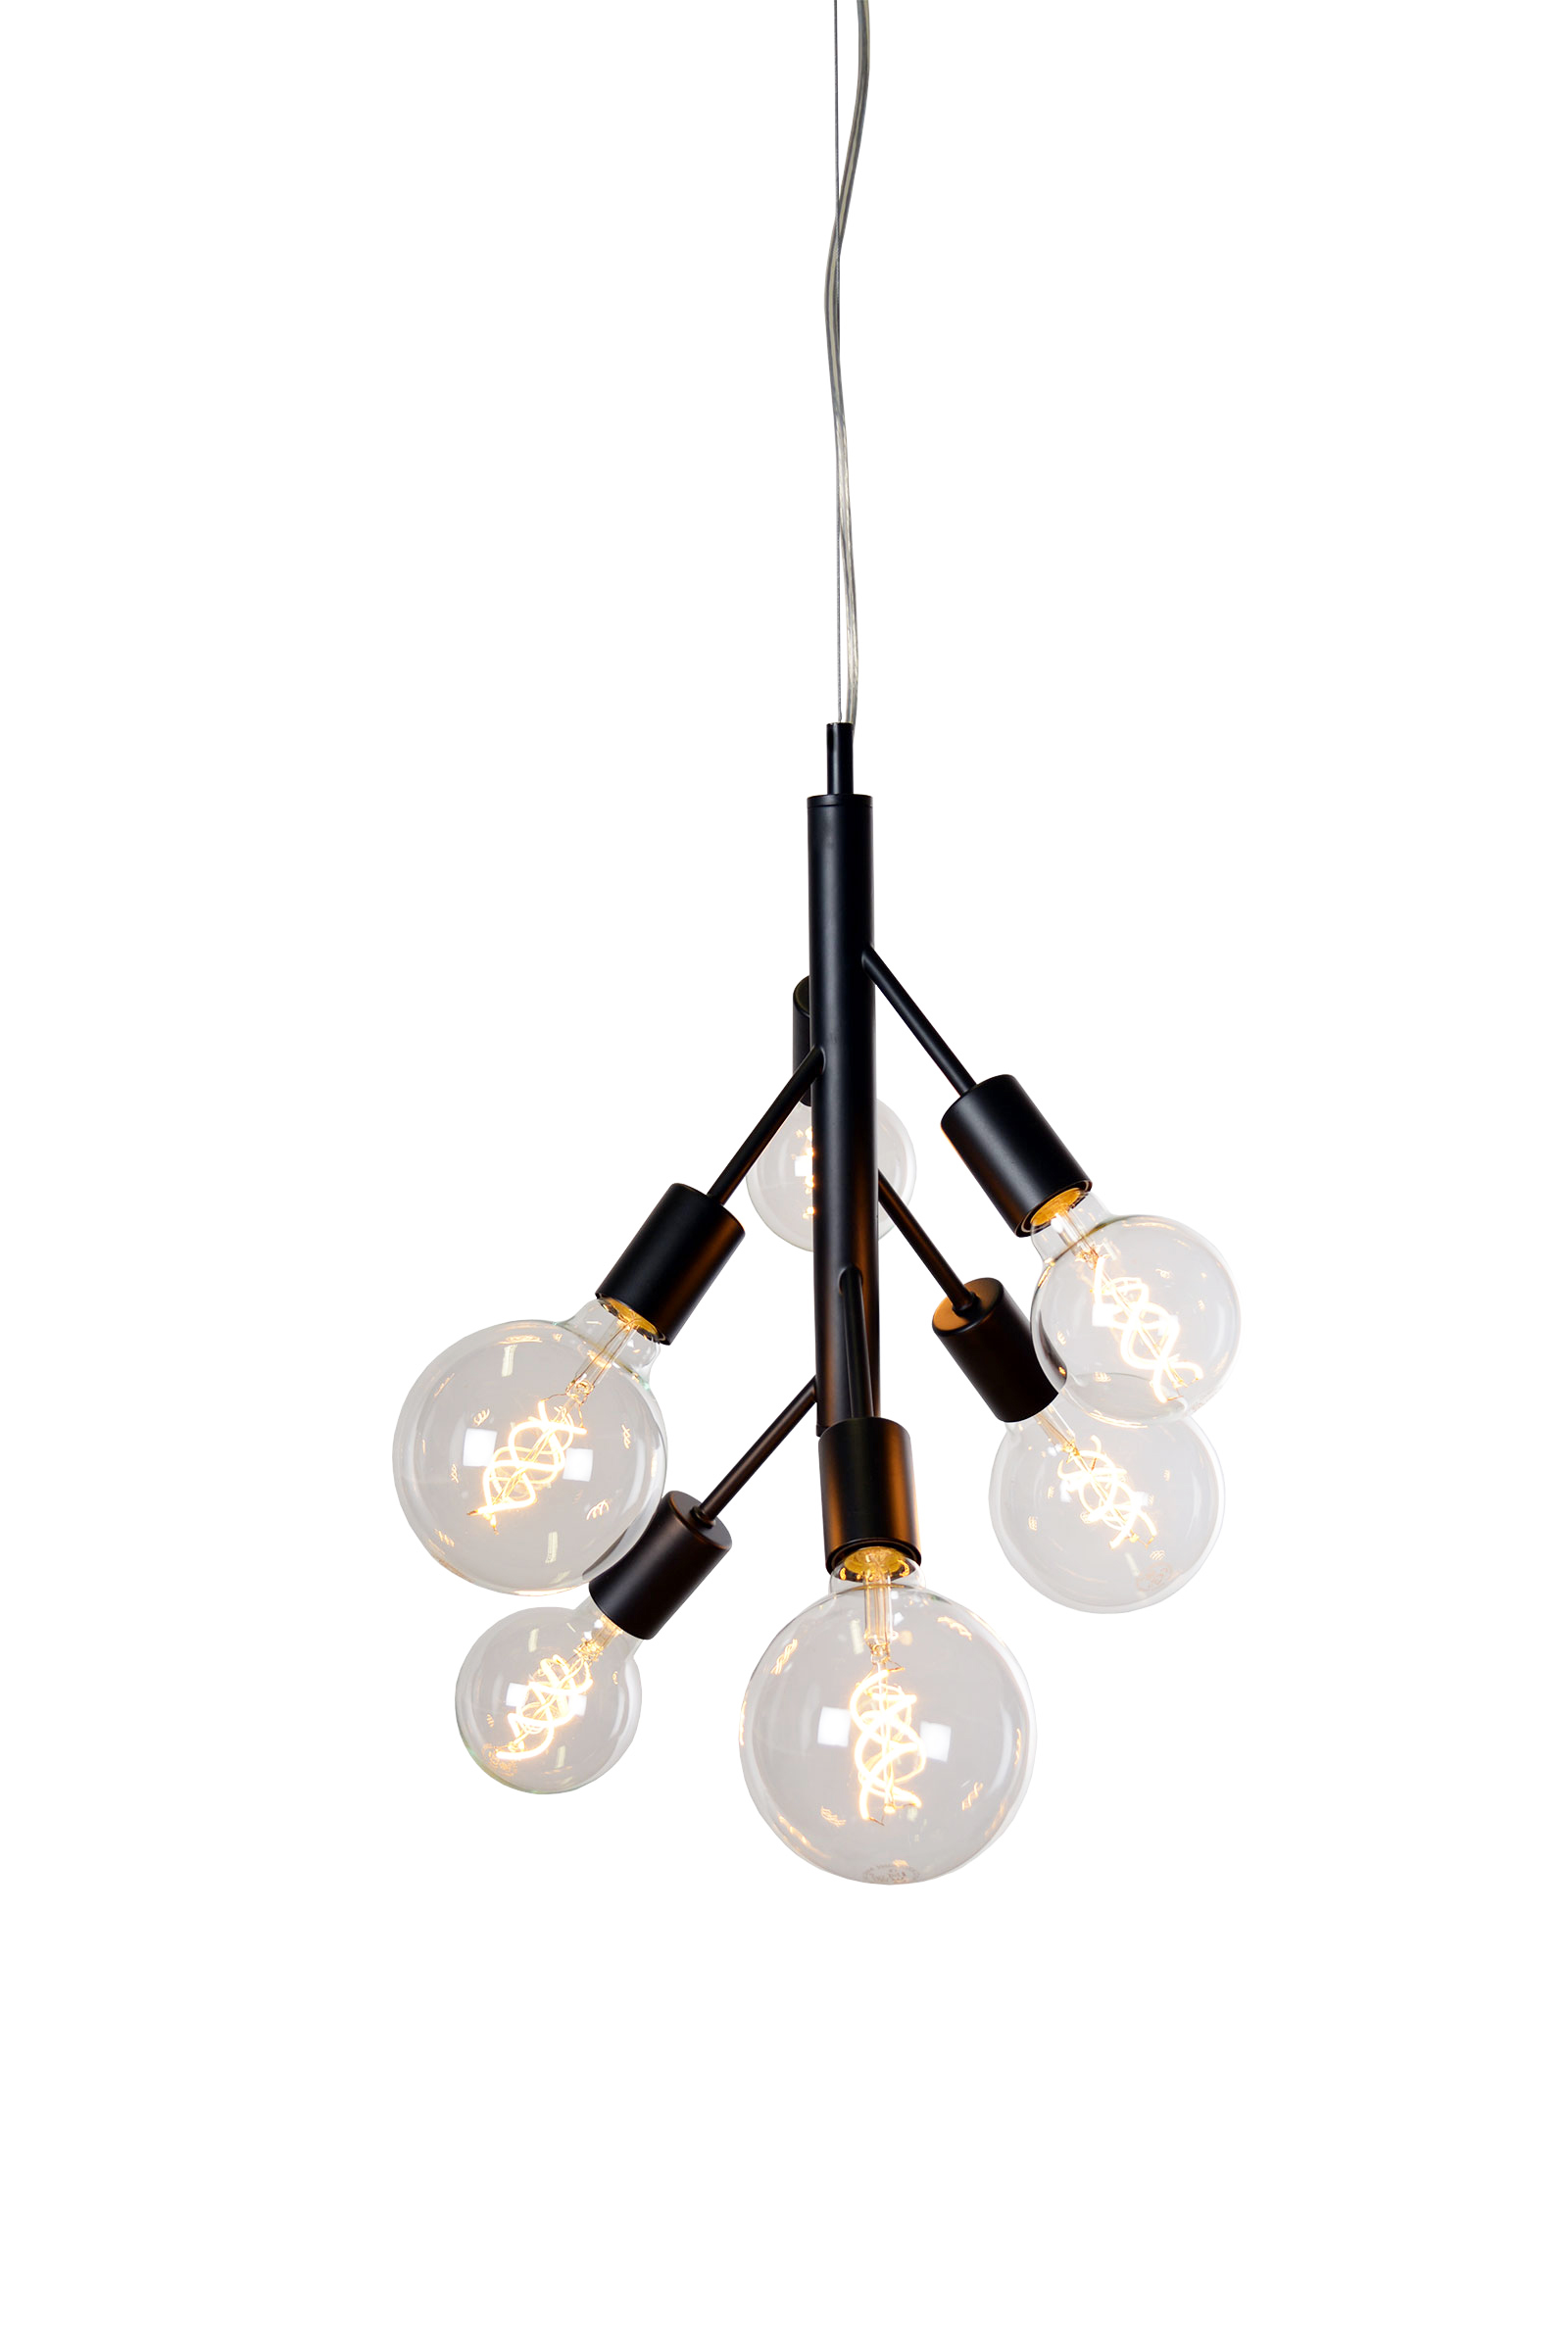 comet lighting. Pendel Comet Svart; Svart Lighting